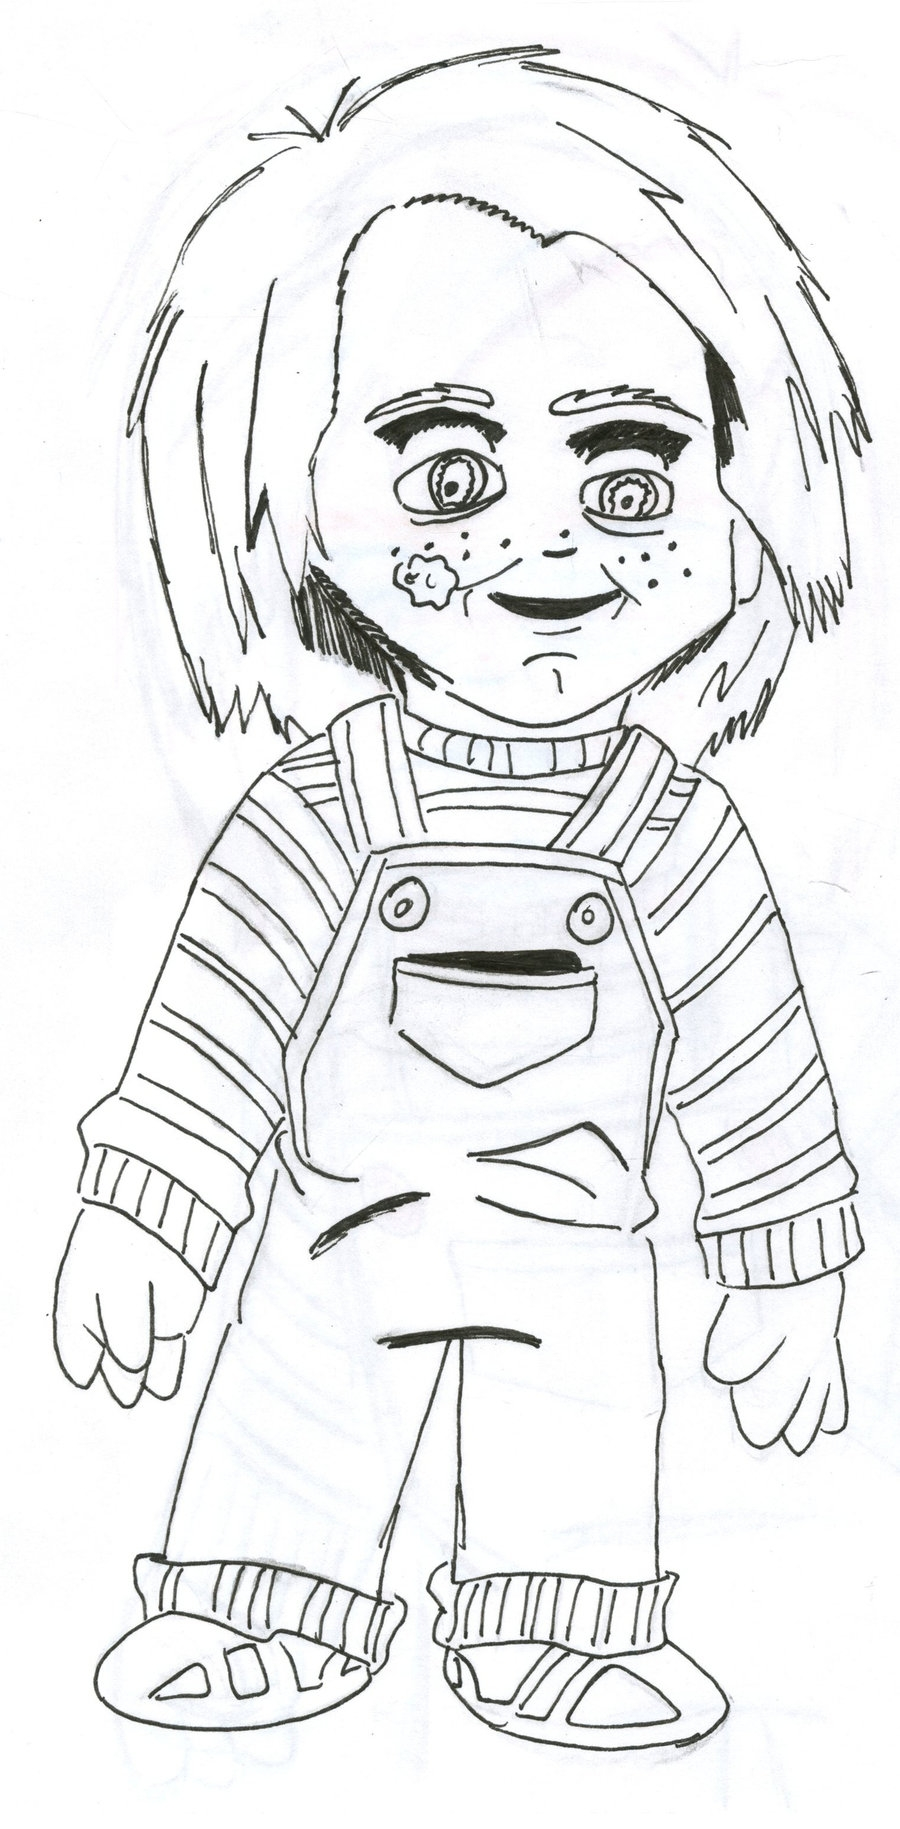 freddy krueger coloring pages - chucky coloring sheets 5 sketch templates